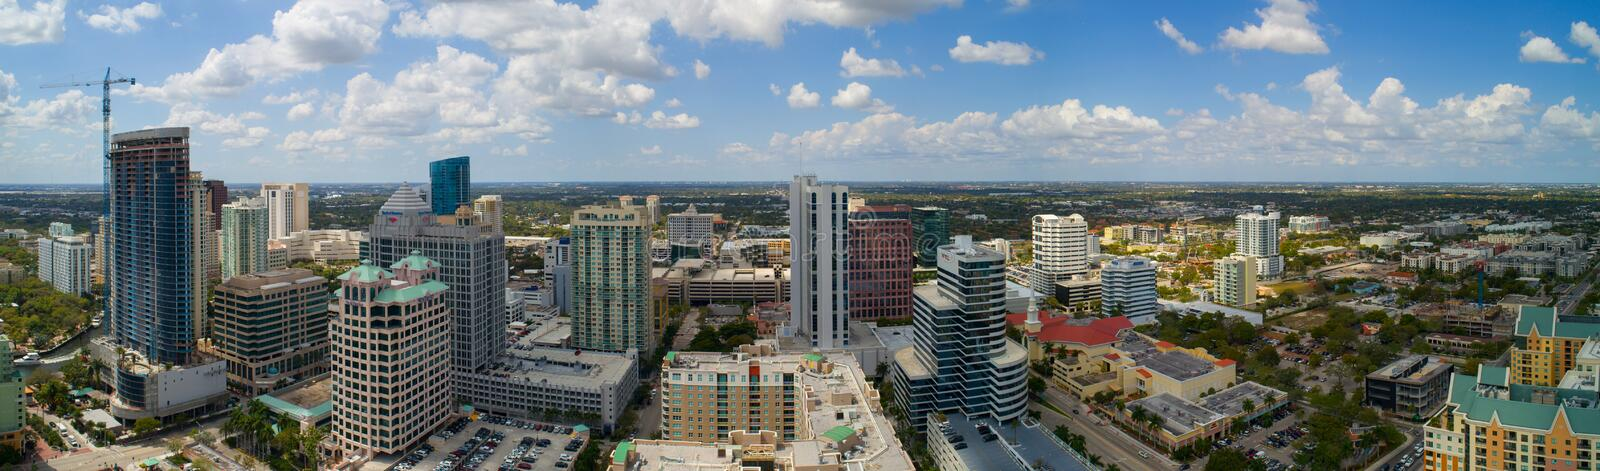 Aerial panoramic photo of Downtown Fort Lauderdale Florida USA royalty free stock photography